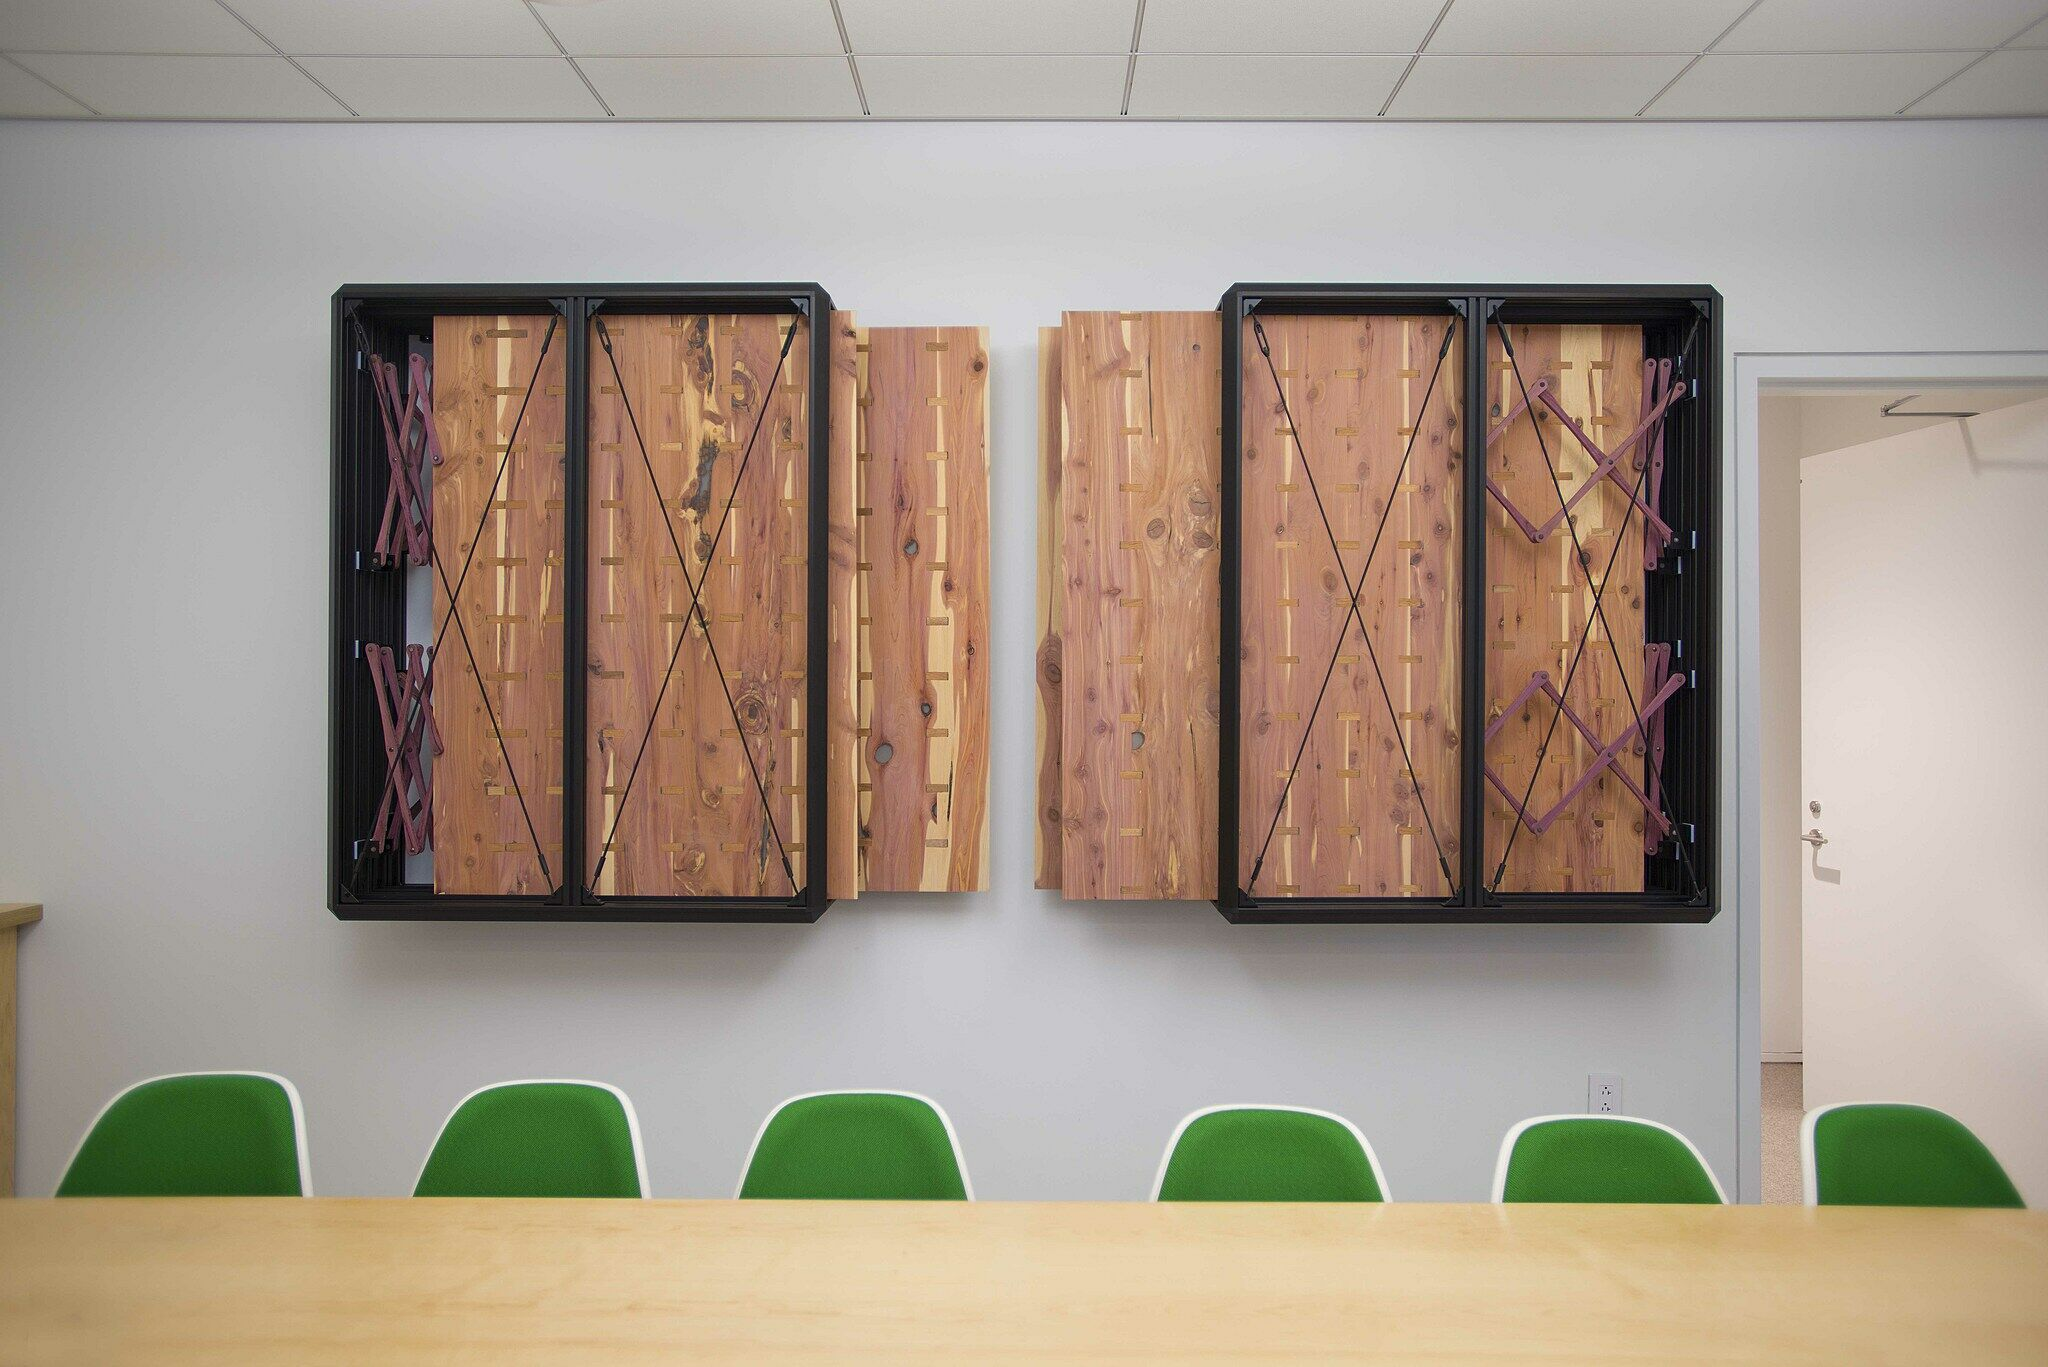 Two rectangular metal boxes containing wooden sheets, mounted on the wall of a conference room